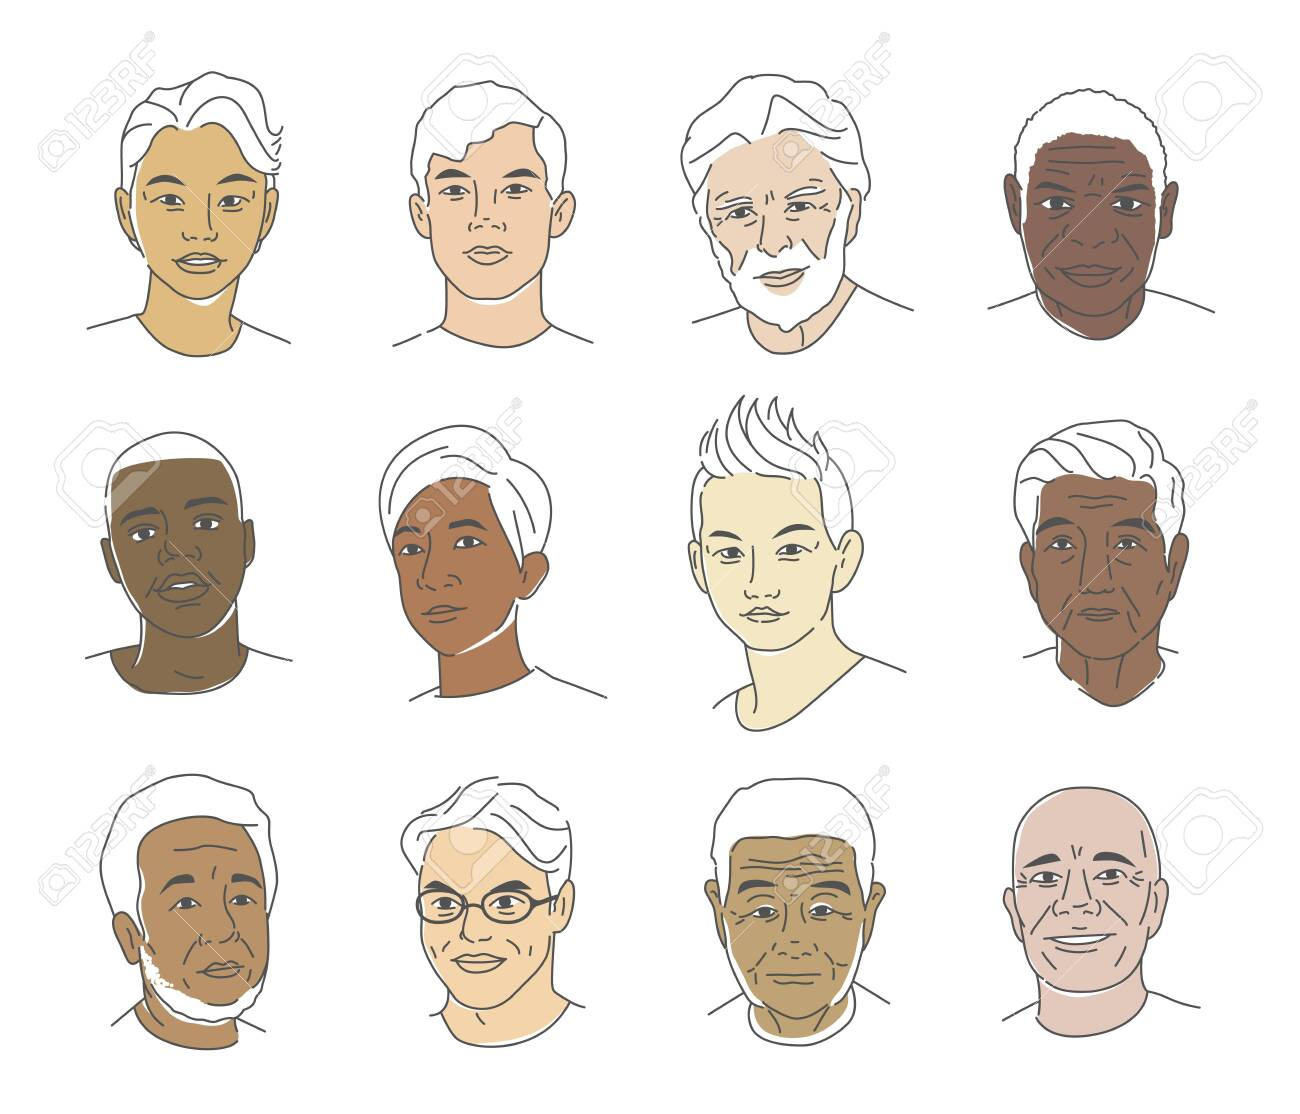 A collection of portraits of people of different nationalities and ages. Men of all races. Icons for user research experience, customer profile. - 150719699